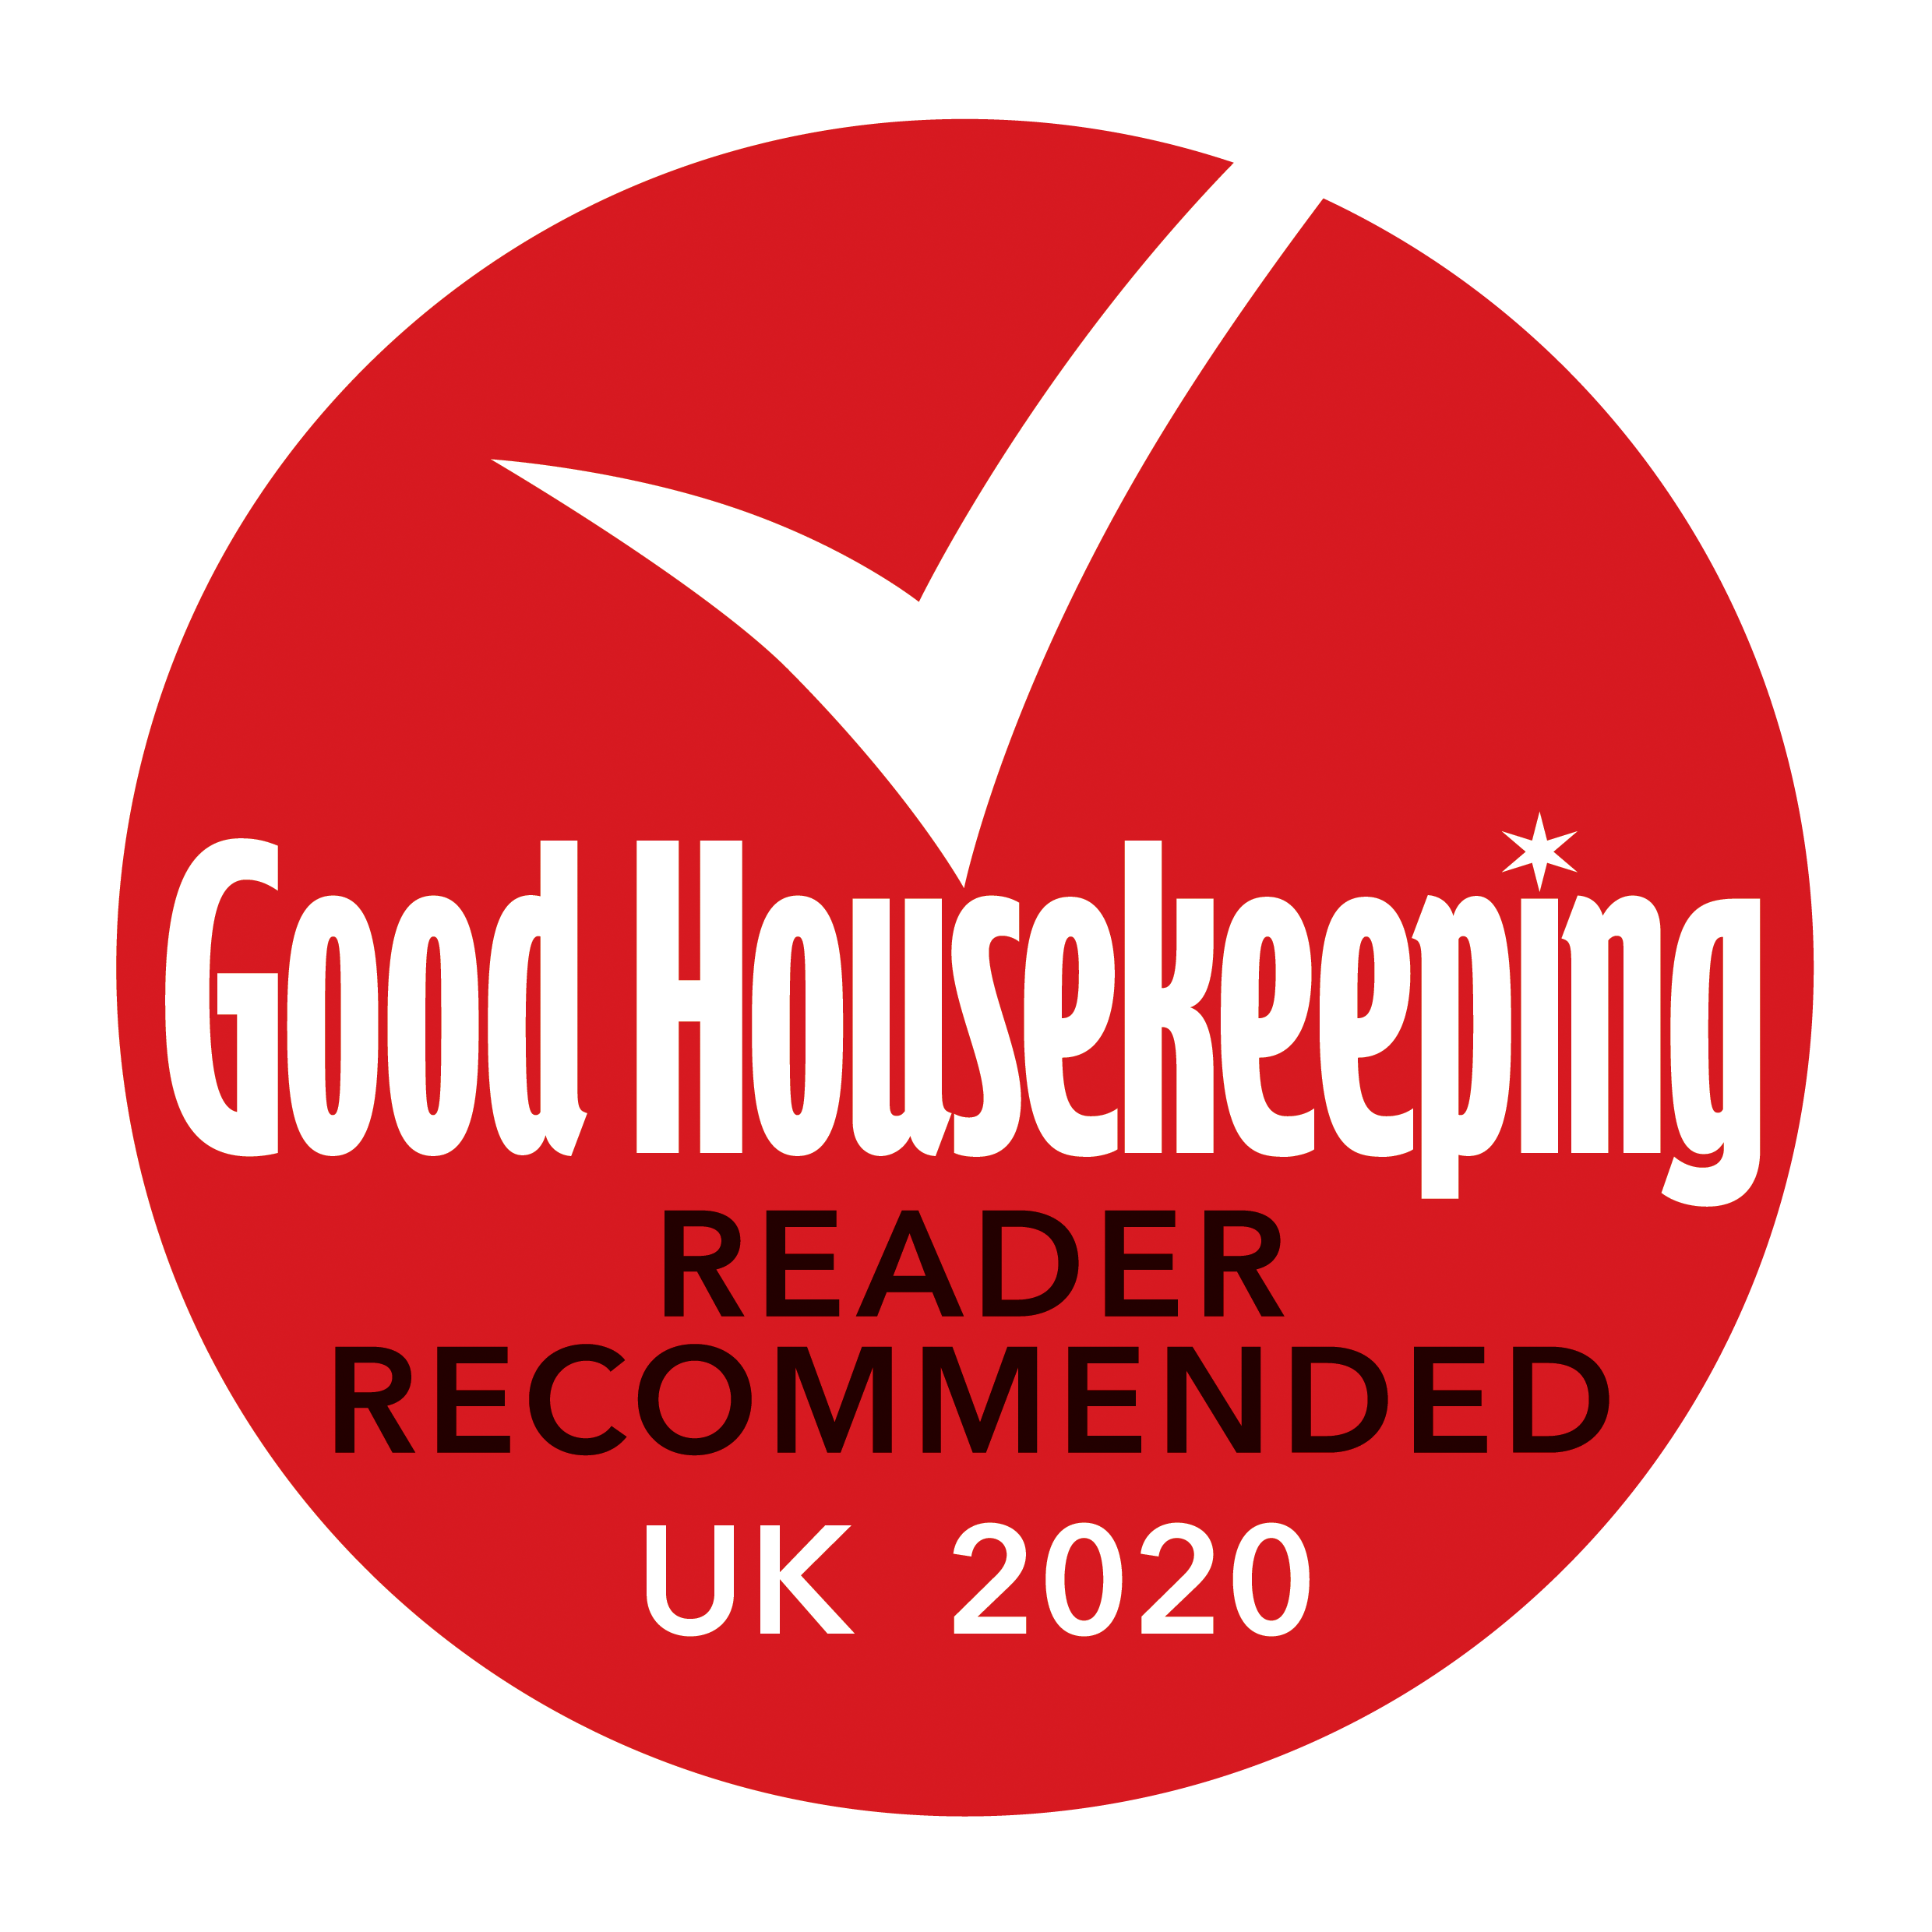 Good Housekeeping recommended